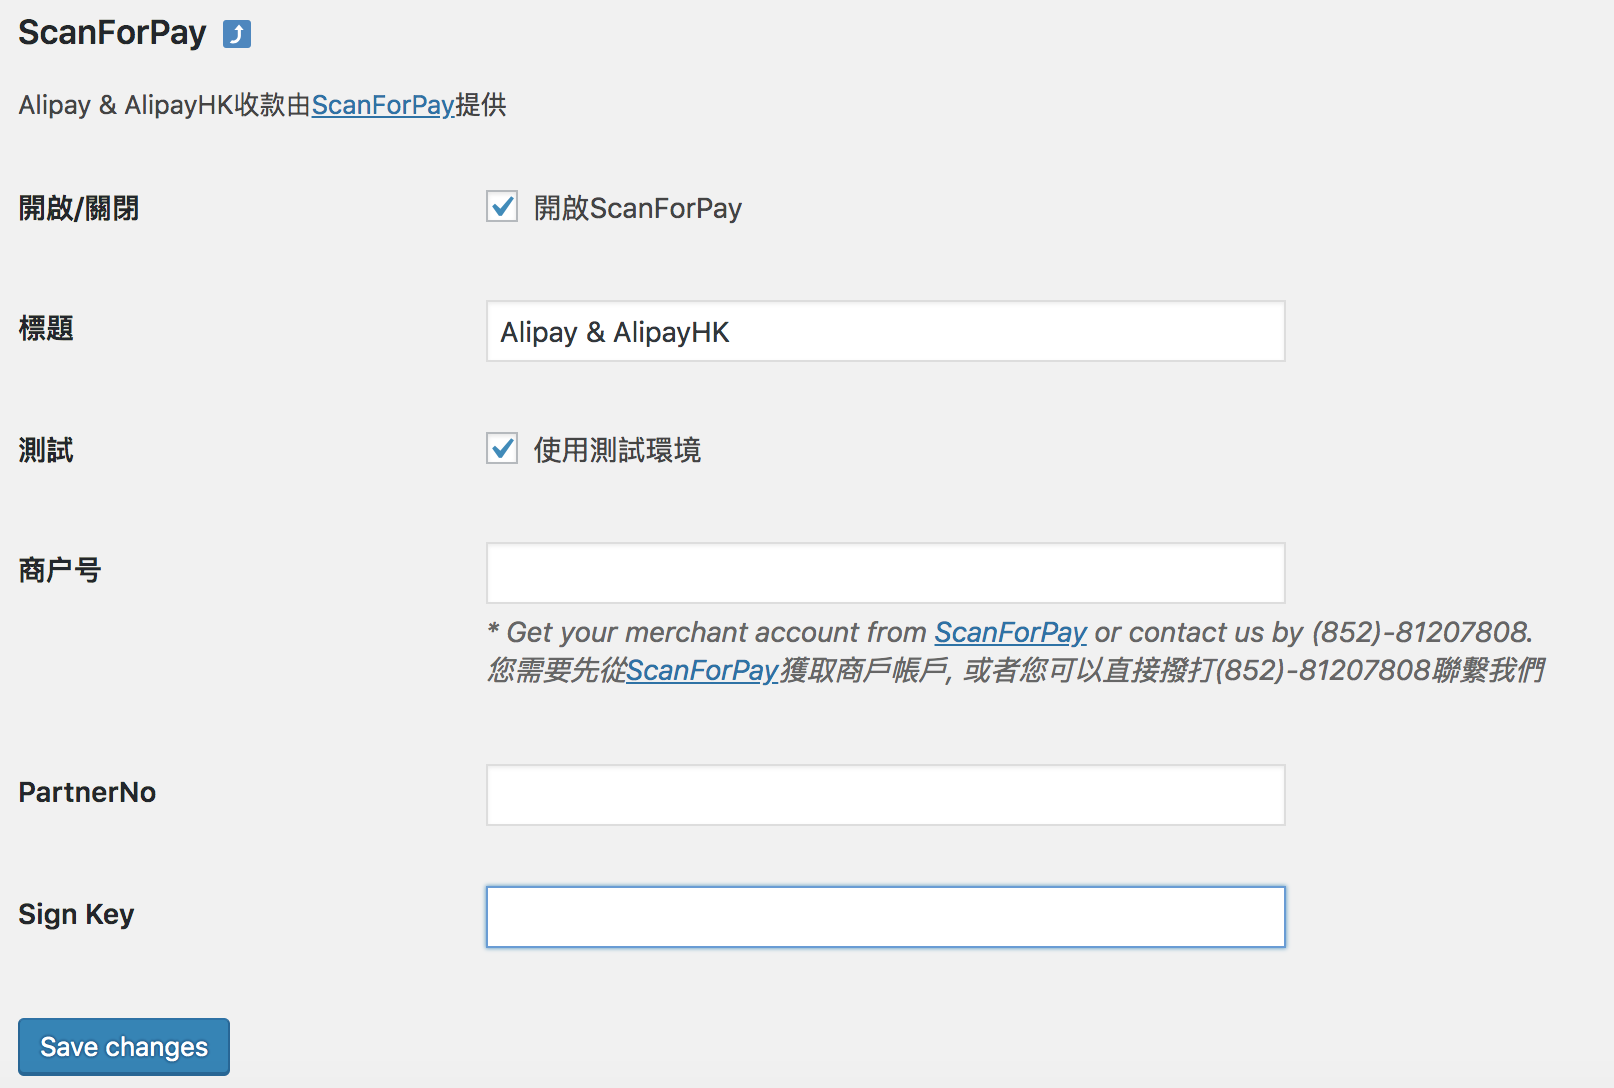 ScanForPay – Alipay & AlipayHK & WechatPay Payment Solutions for WooCommerce